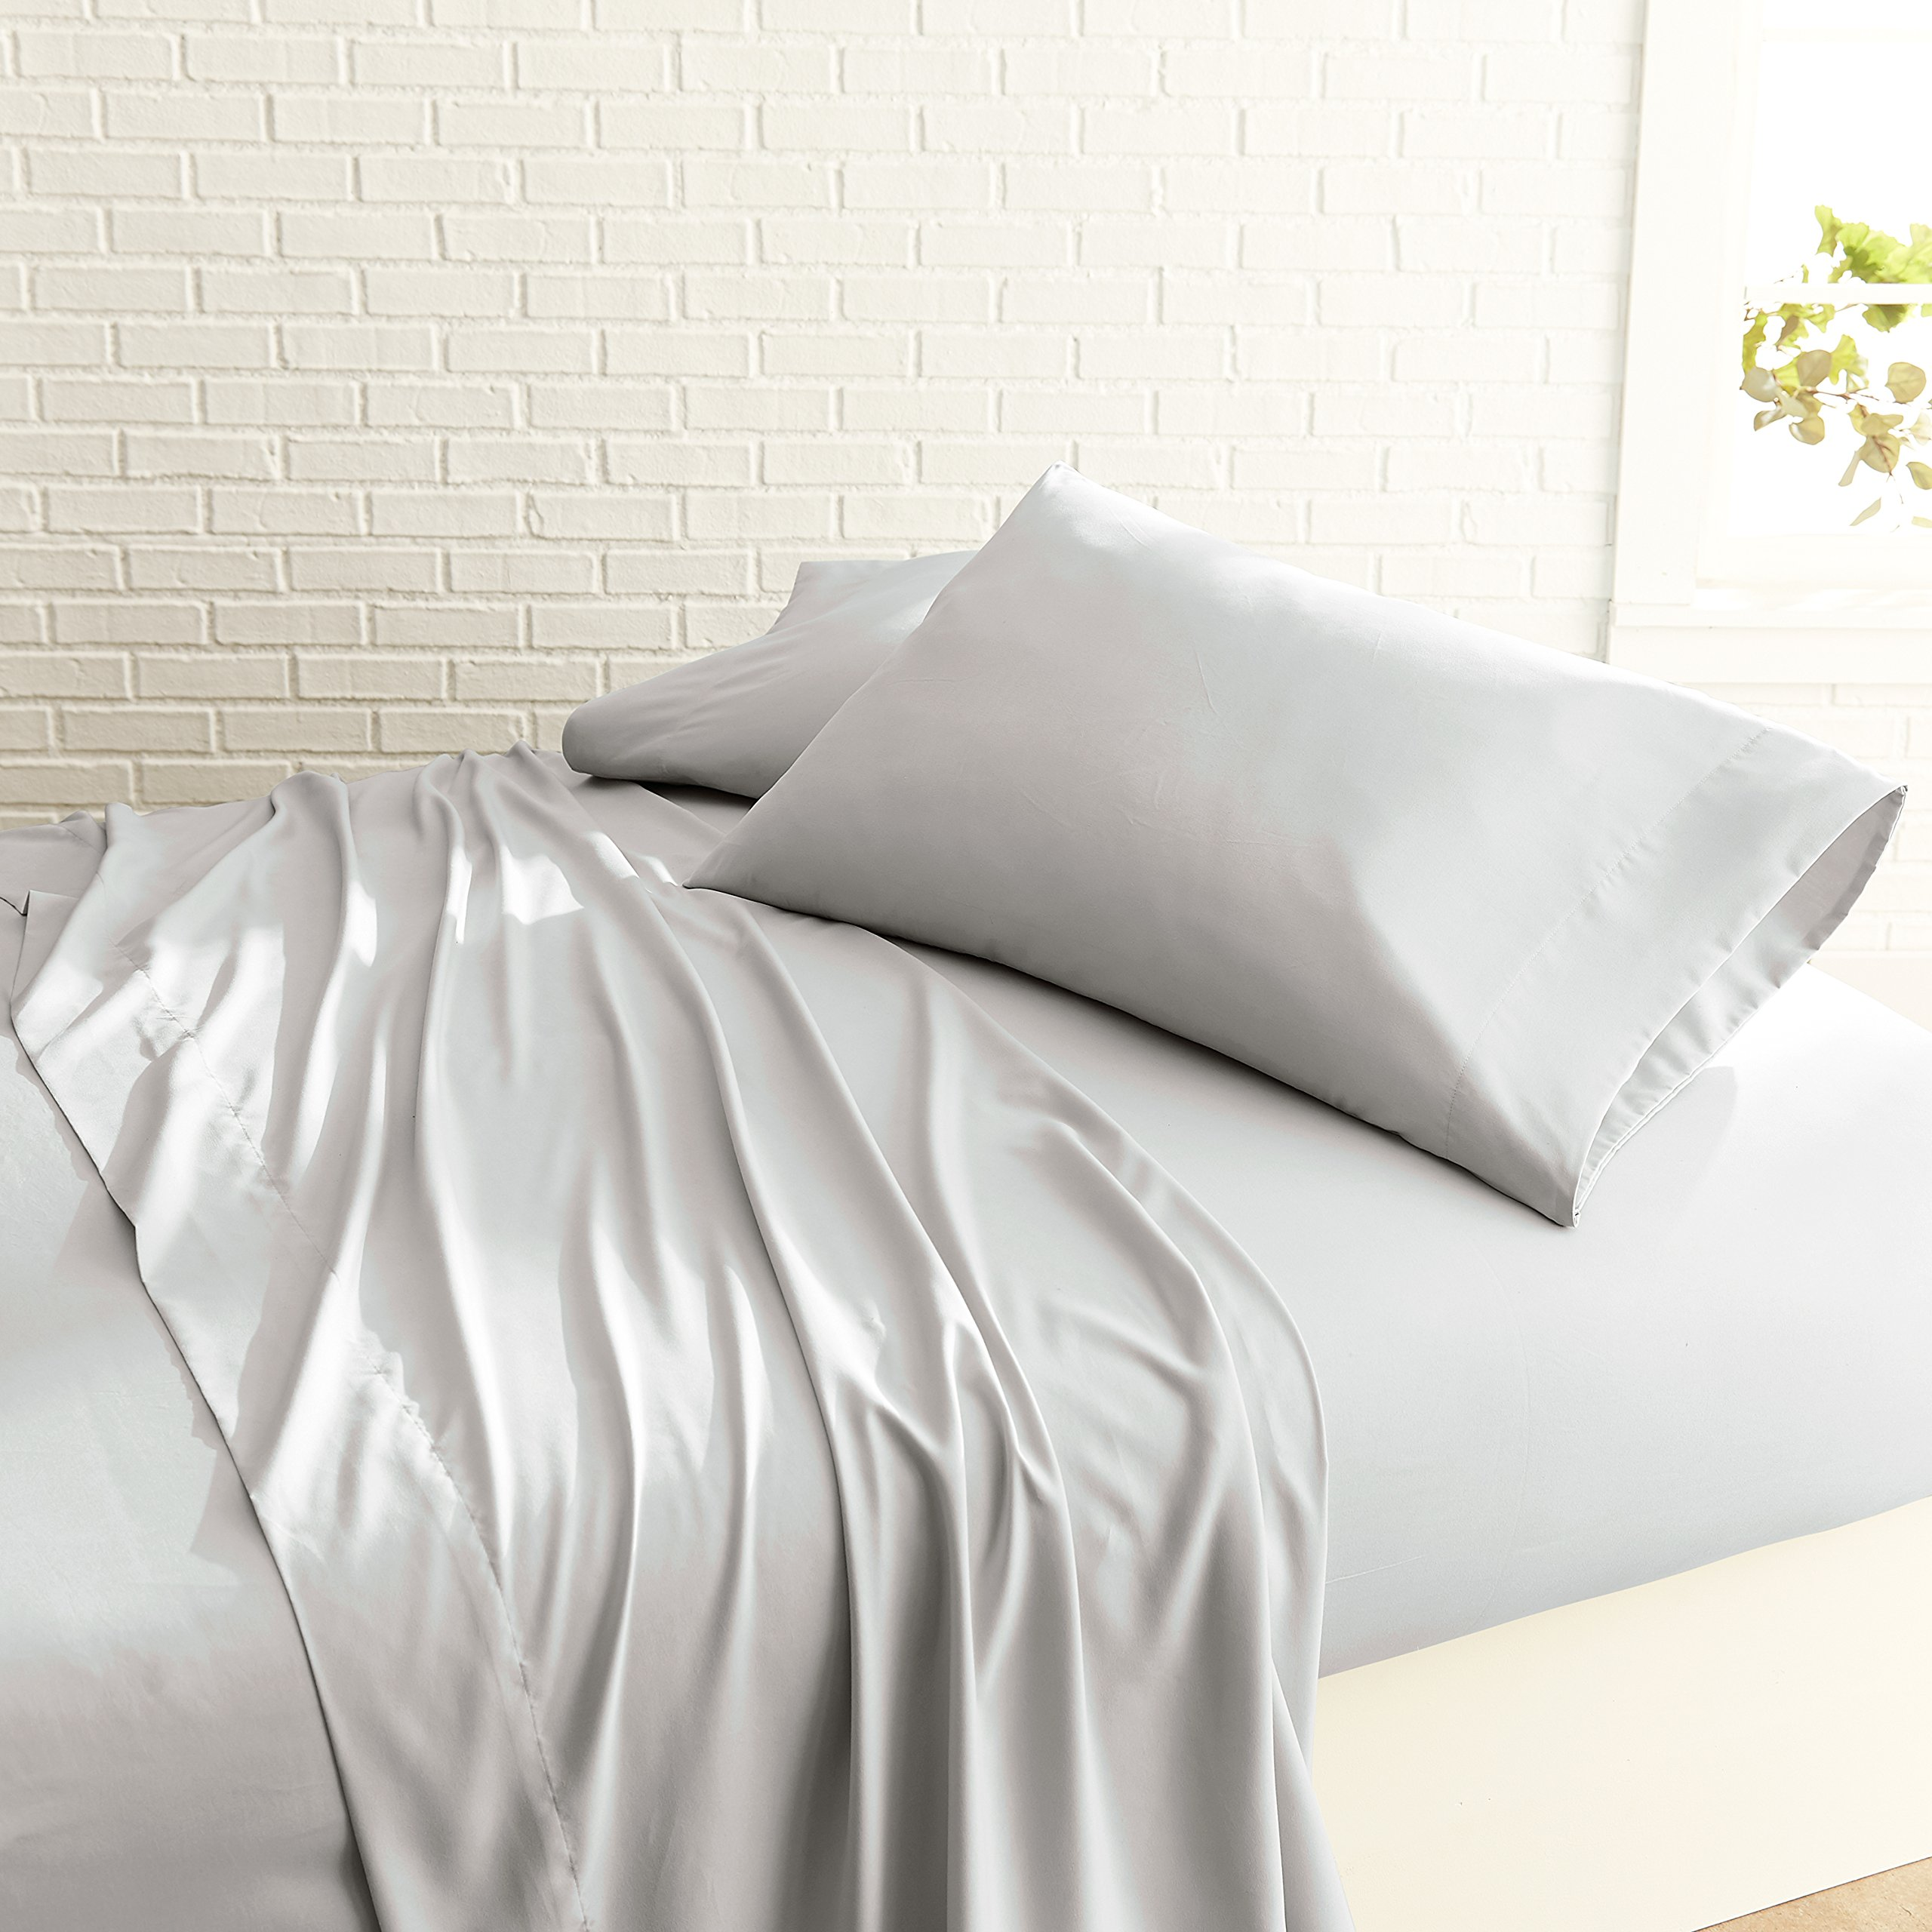 Luxurious Garment Washed 1500 Spa Series Super Soft 4 Piece Sheet Set, Flat and Fitted Sheets